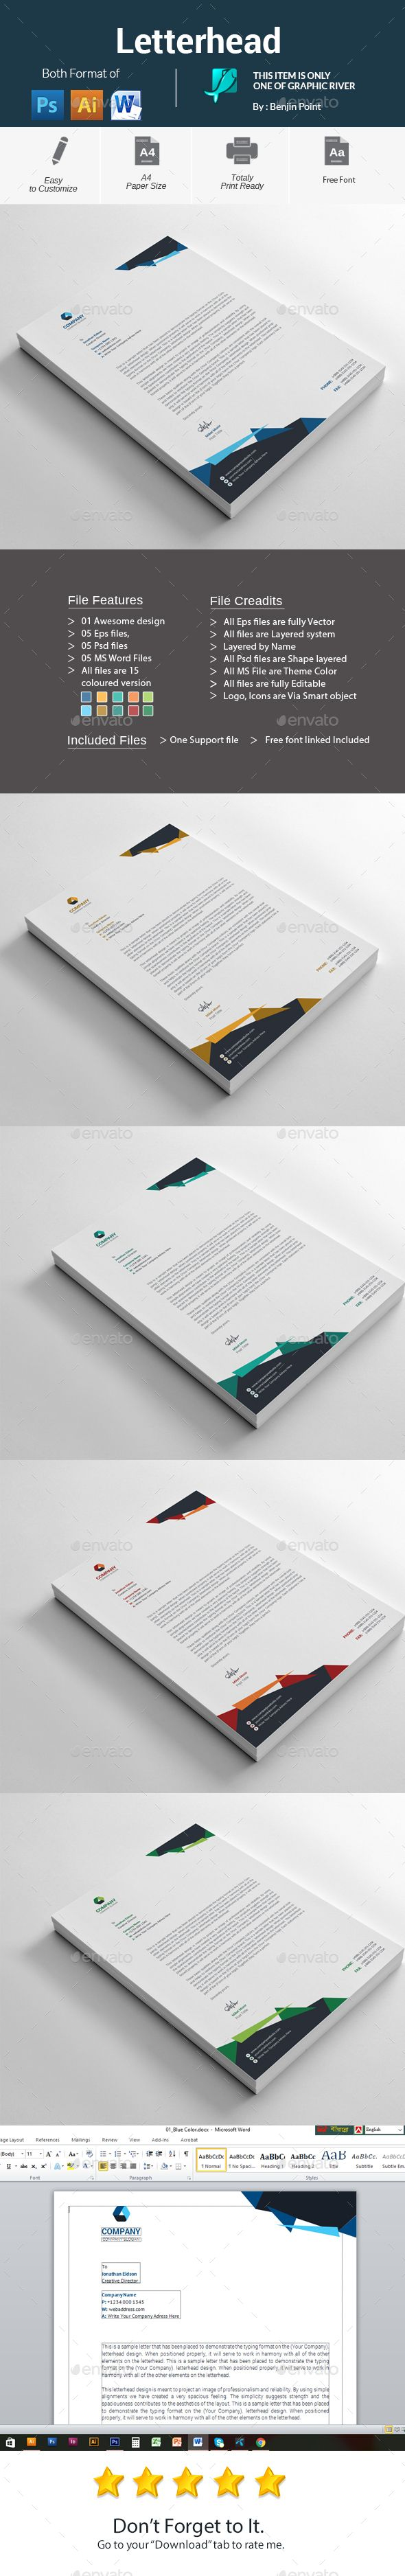 Letterhead template psd vector eps ai illustrator ms word letterhead template psd vector eps ai illustrator ms word spiritdancerdesigns